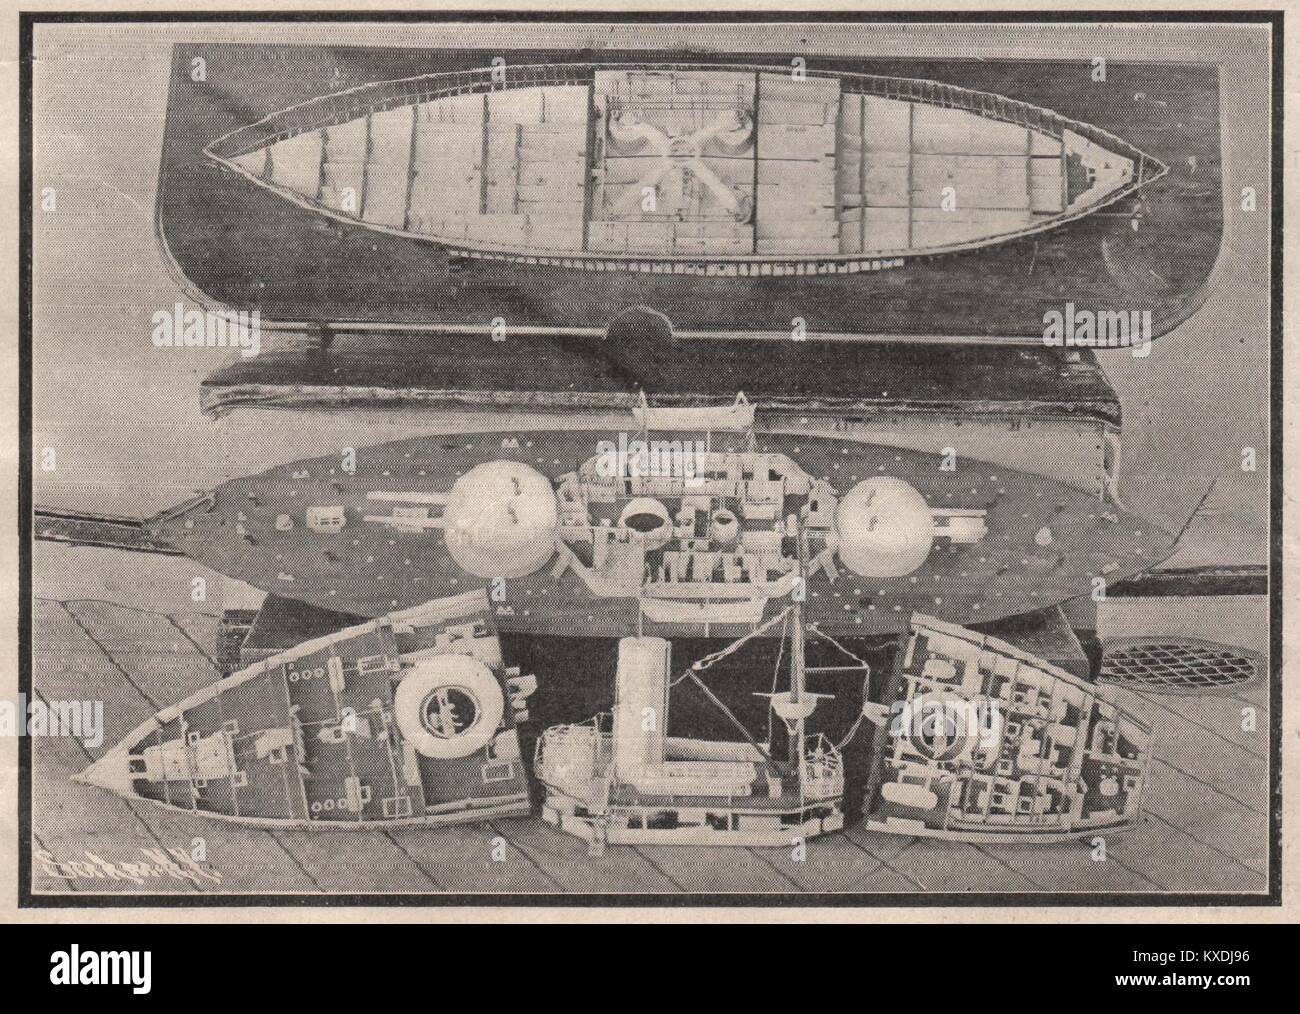 Model Dismantled to show Interior Details - Stock Image